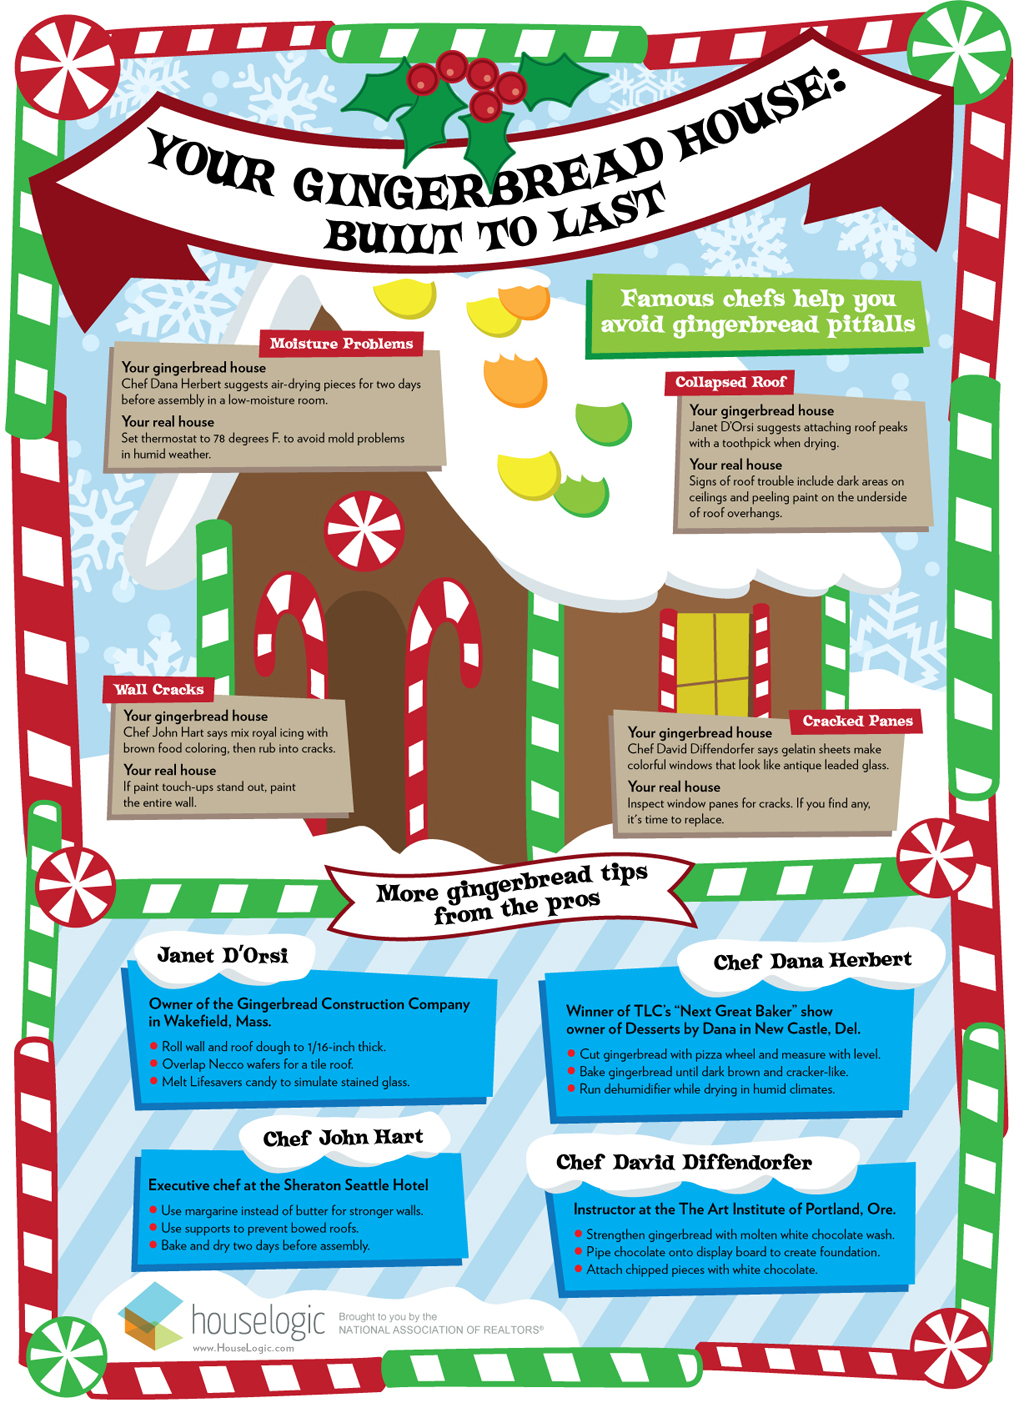 How to Make Gingerbread Houses | Decorating Gingerbread Houses